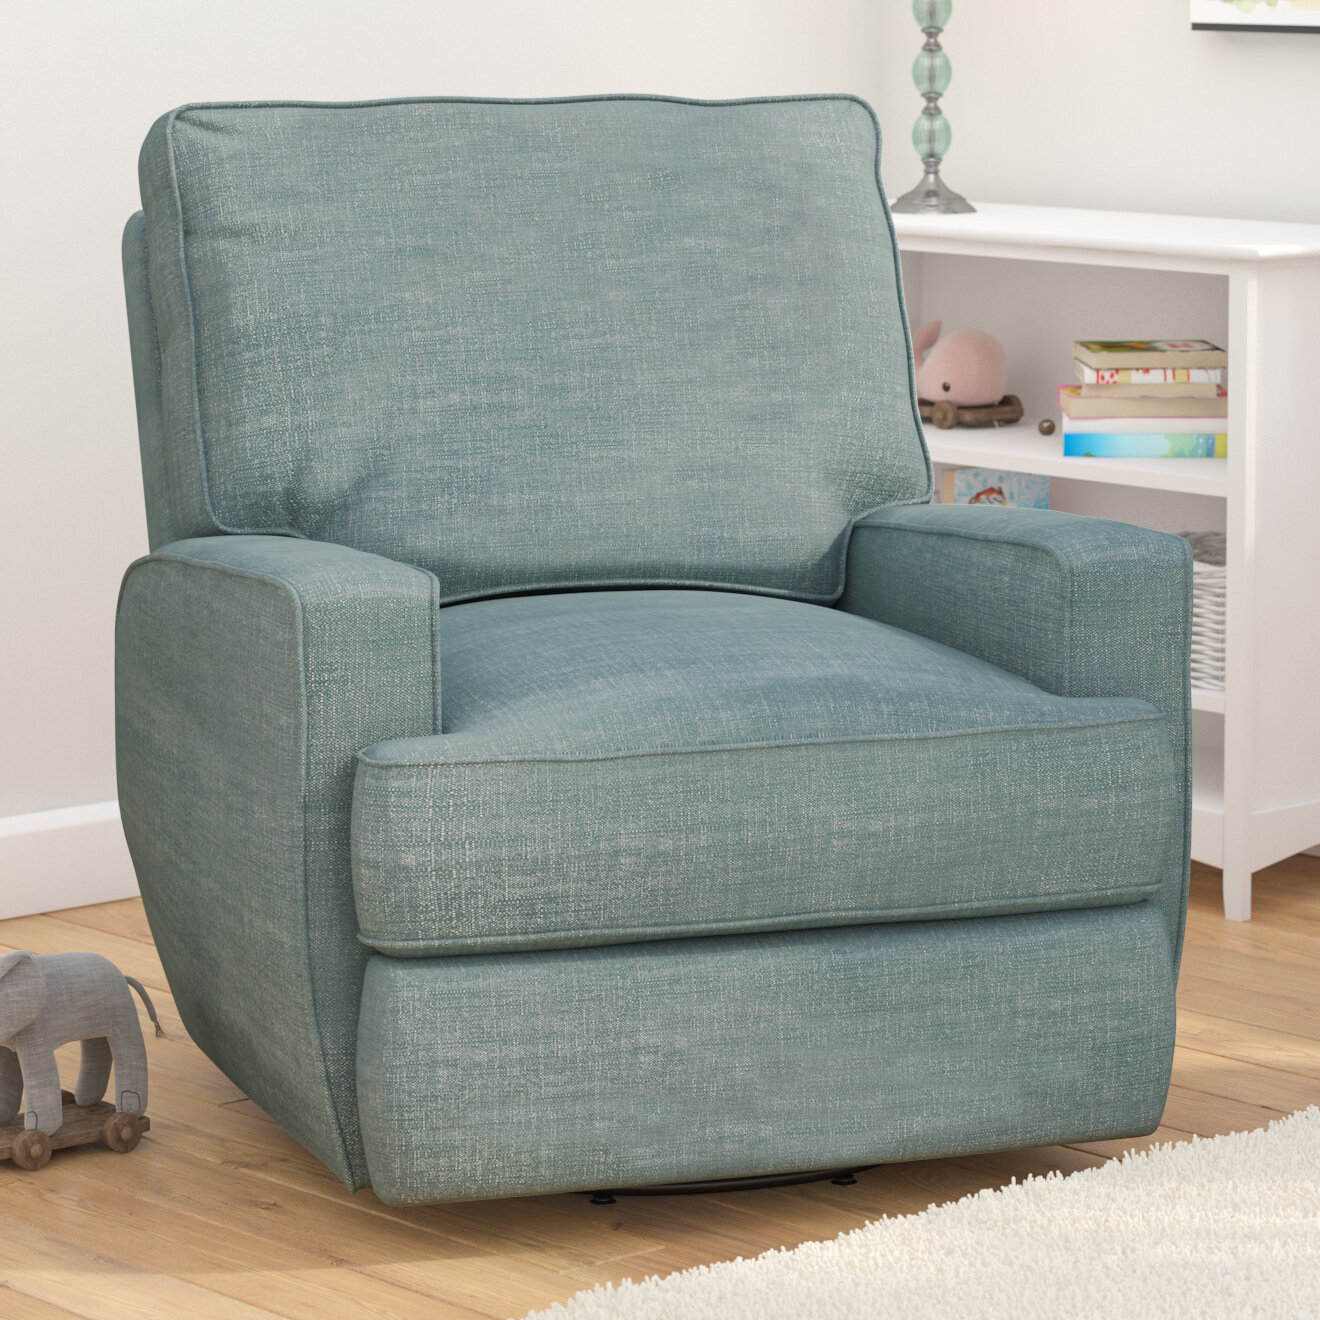 Viv + Rae Glenda Swivel Reclining Glider & Reviews | Wayfair